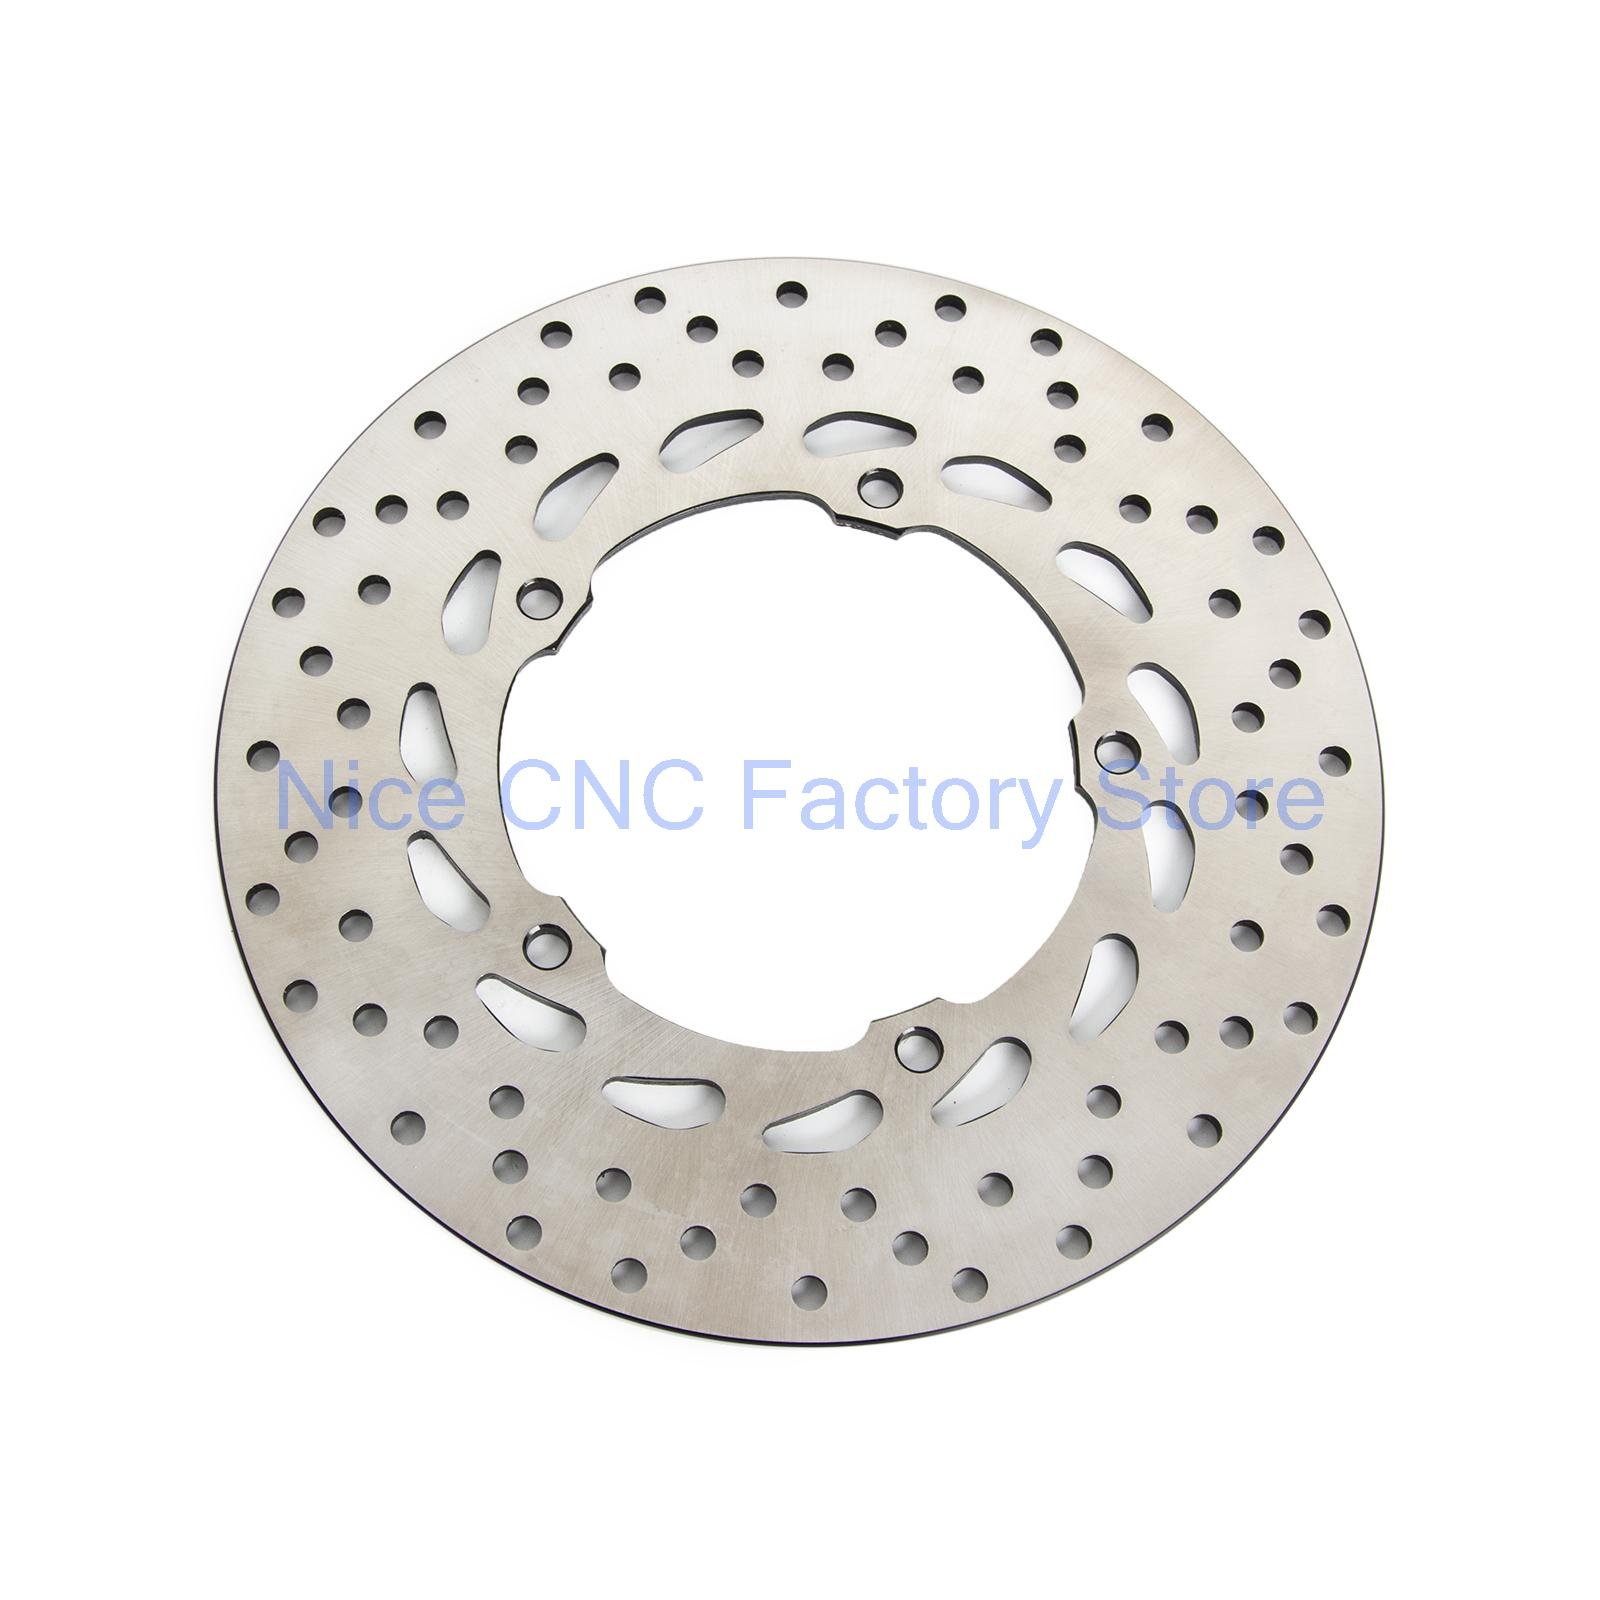 Motorcycle Rear Brake Disc Rotor For Yamaha XJ6-N XJ6N Diversion 600 09-15 XJ6-F XJ6F 10-15 XJ6-S XJ6S 10-15 XJ6-SP XJ6SP 2013 keoghs real adelin 260mm floating brake disc high quality for yamaha scooter cygnus modify